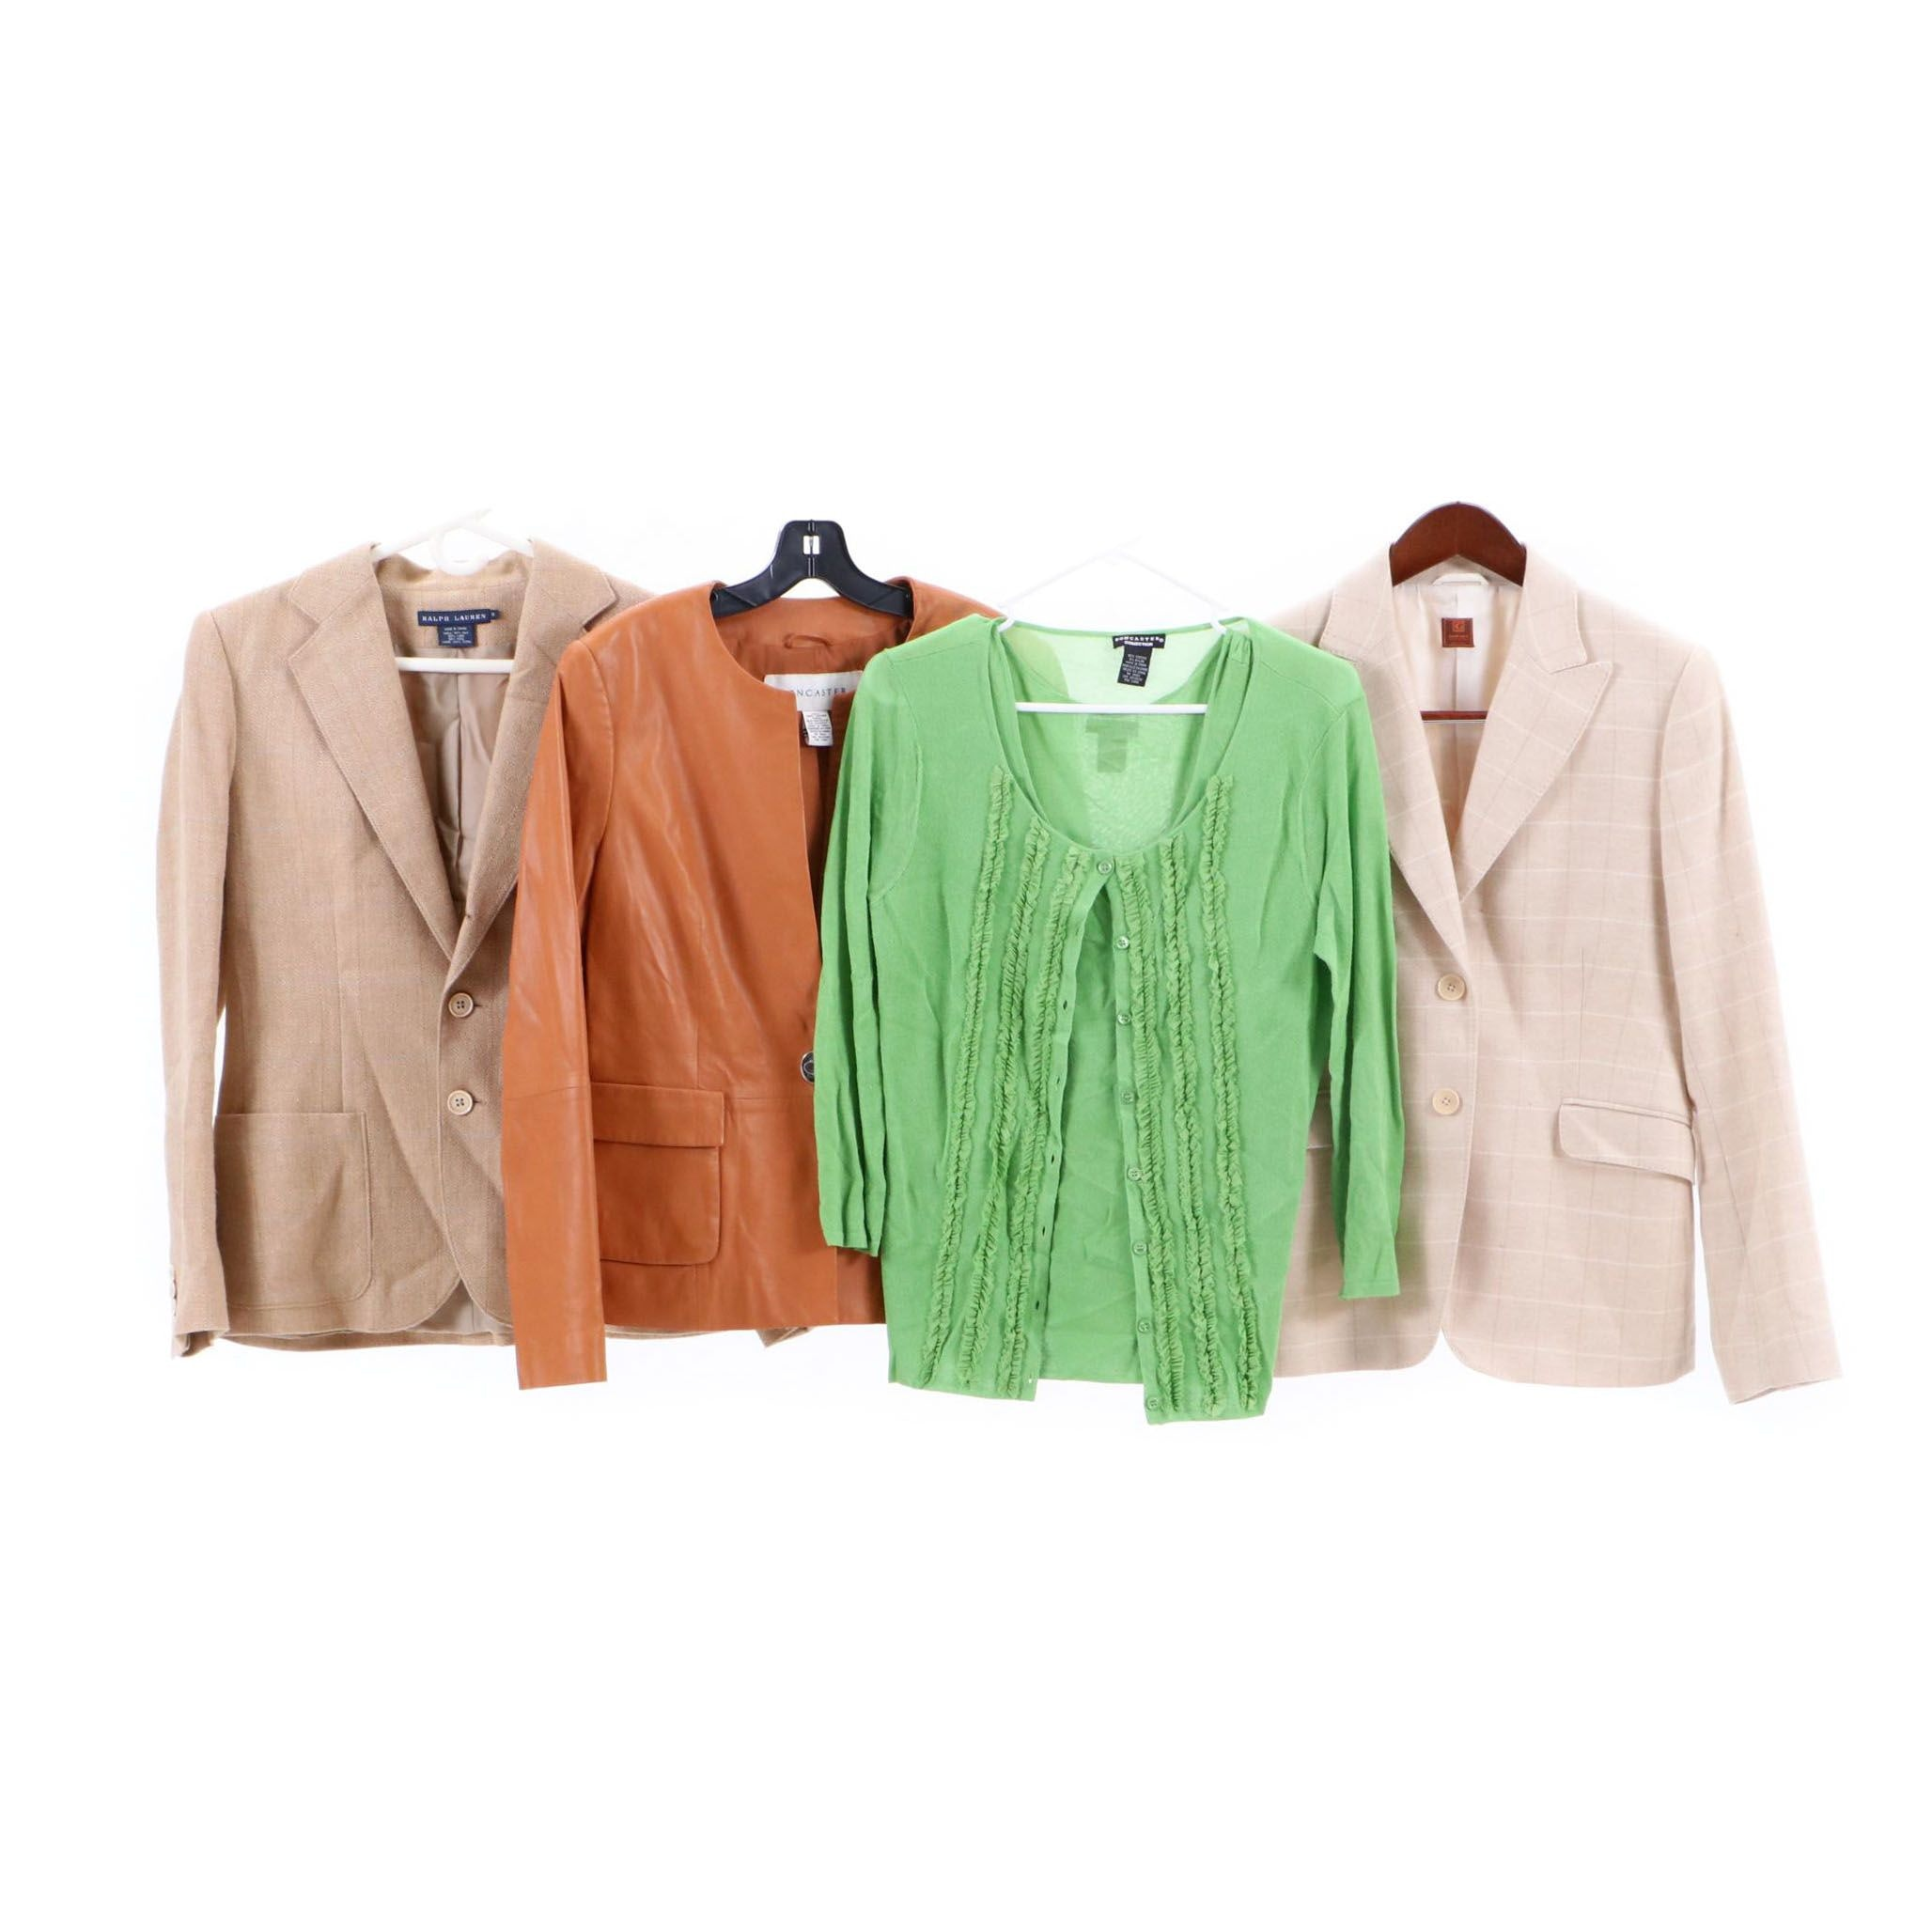 Women's Giorgio's Cashmere Jacket, Doncaster Leather Jacket and Other Separates